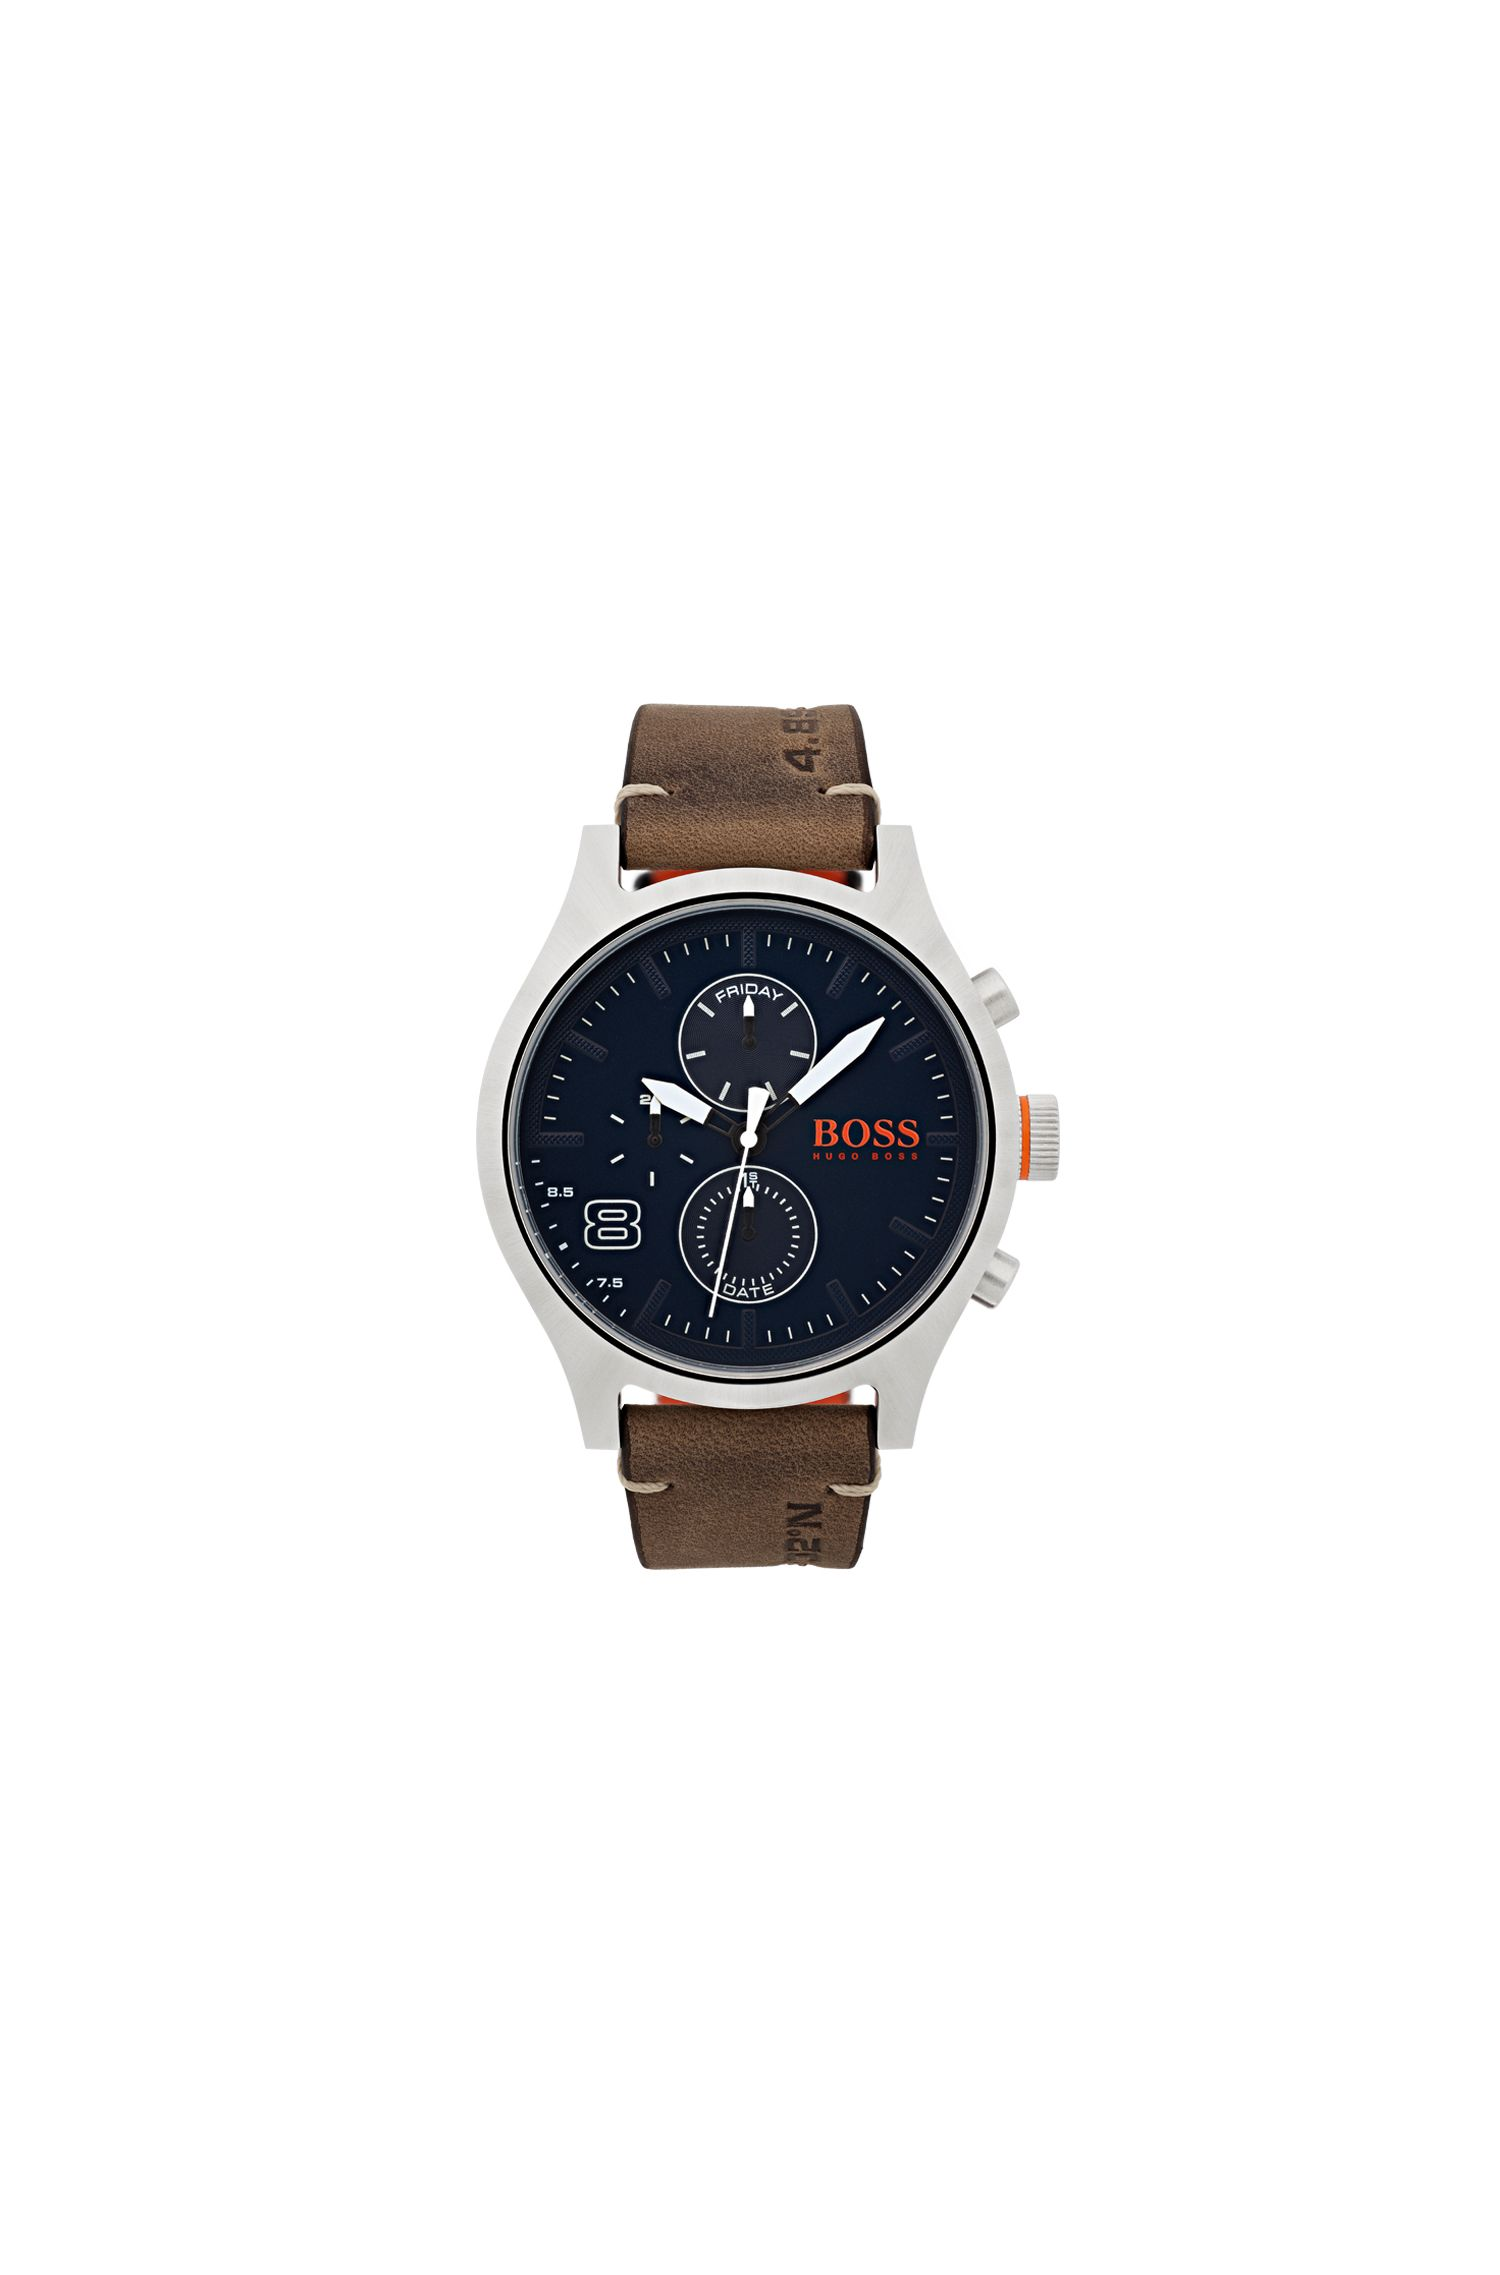 Stainless-steel watch with blue dial and brown leather strap